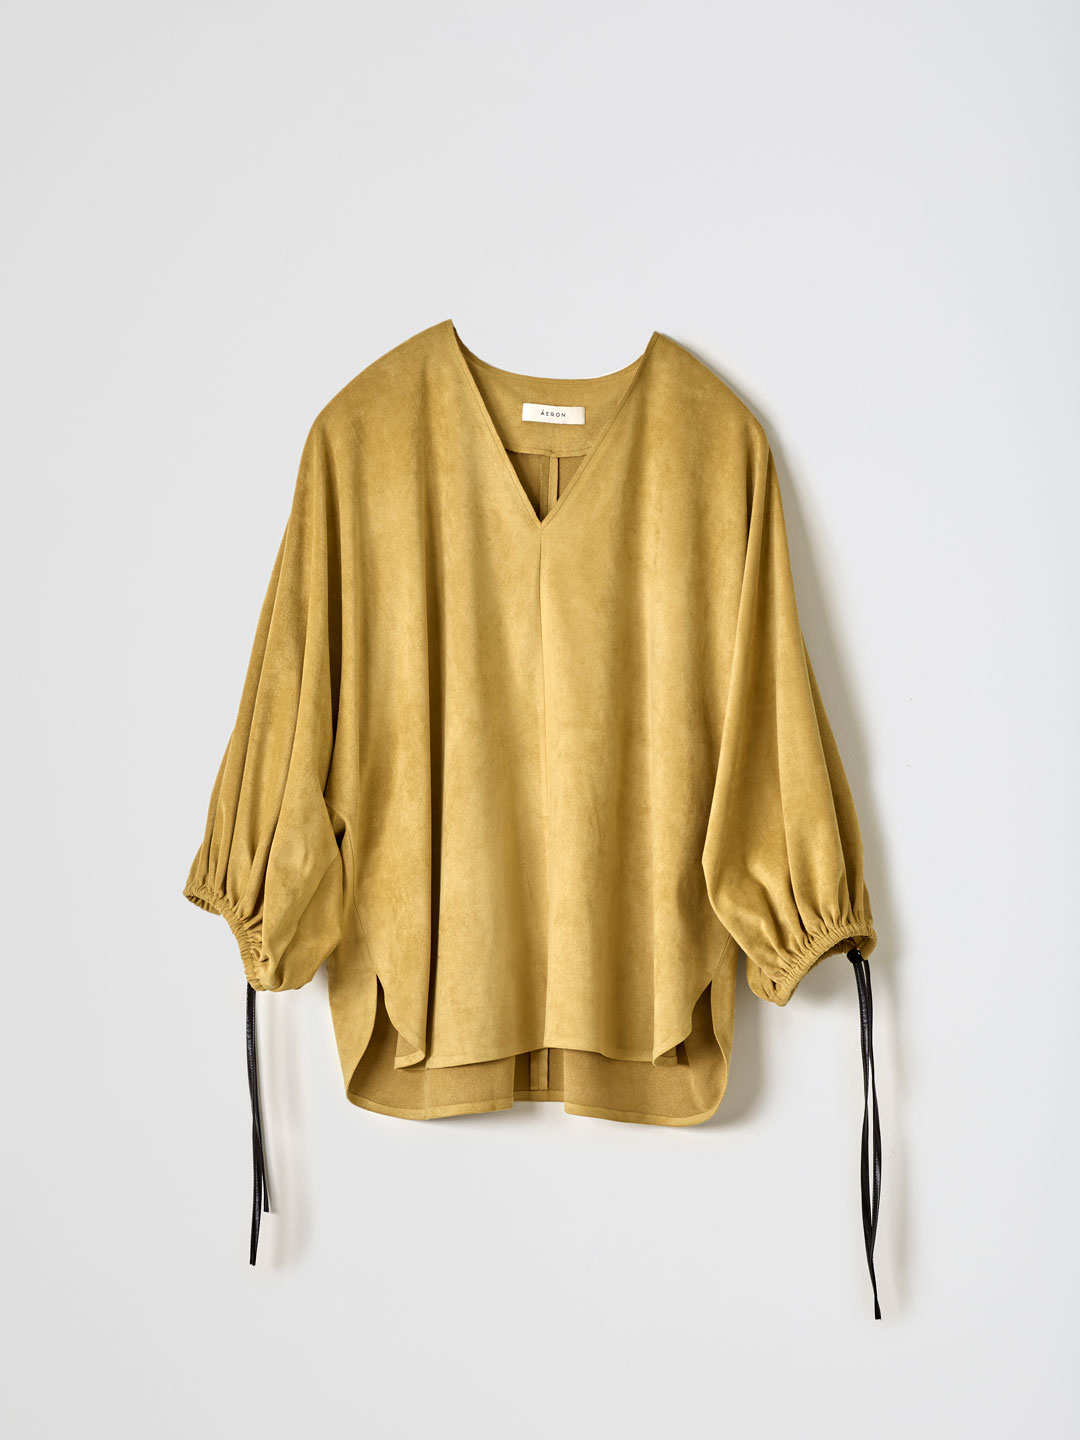 PAPAN / V Neck Tie Sleeve Blouse - Mustard